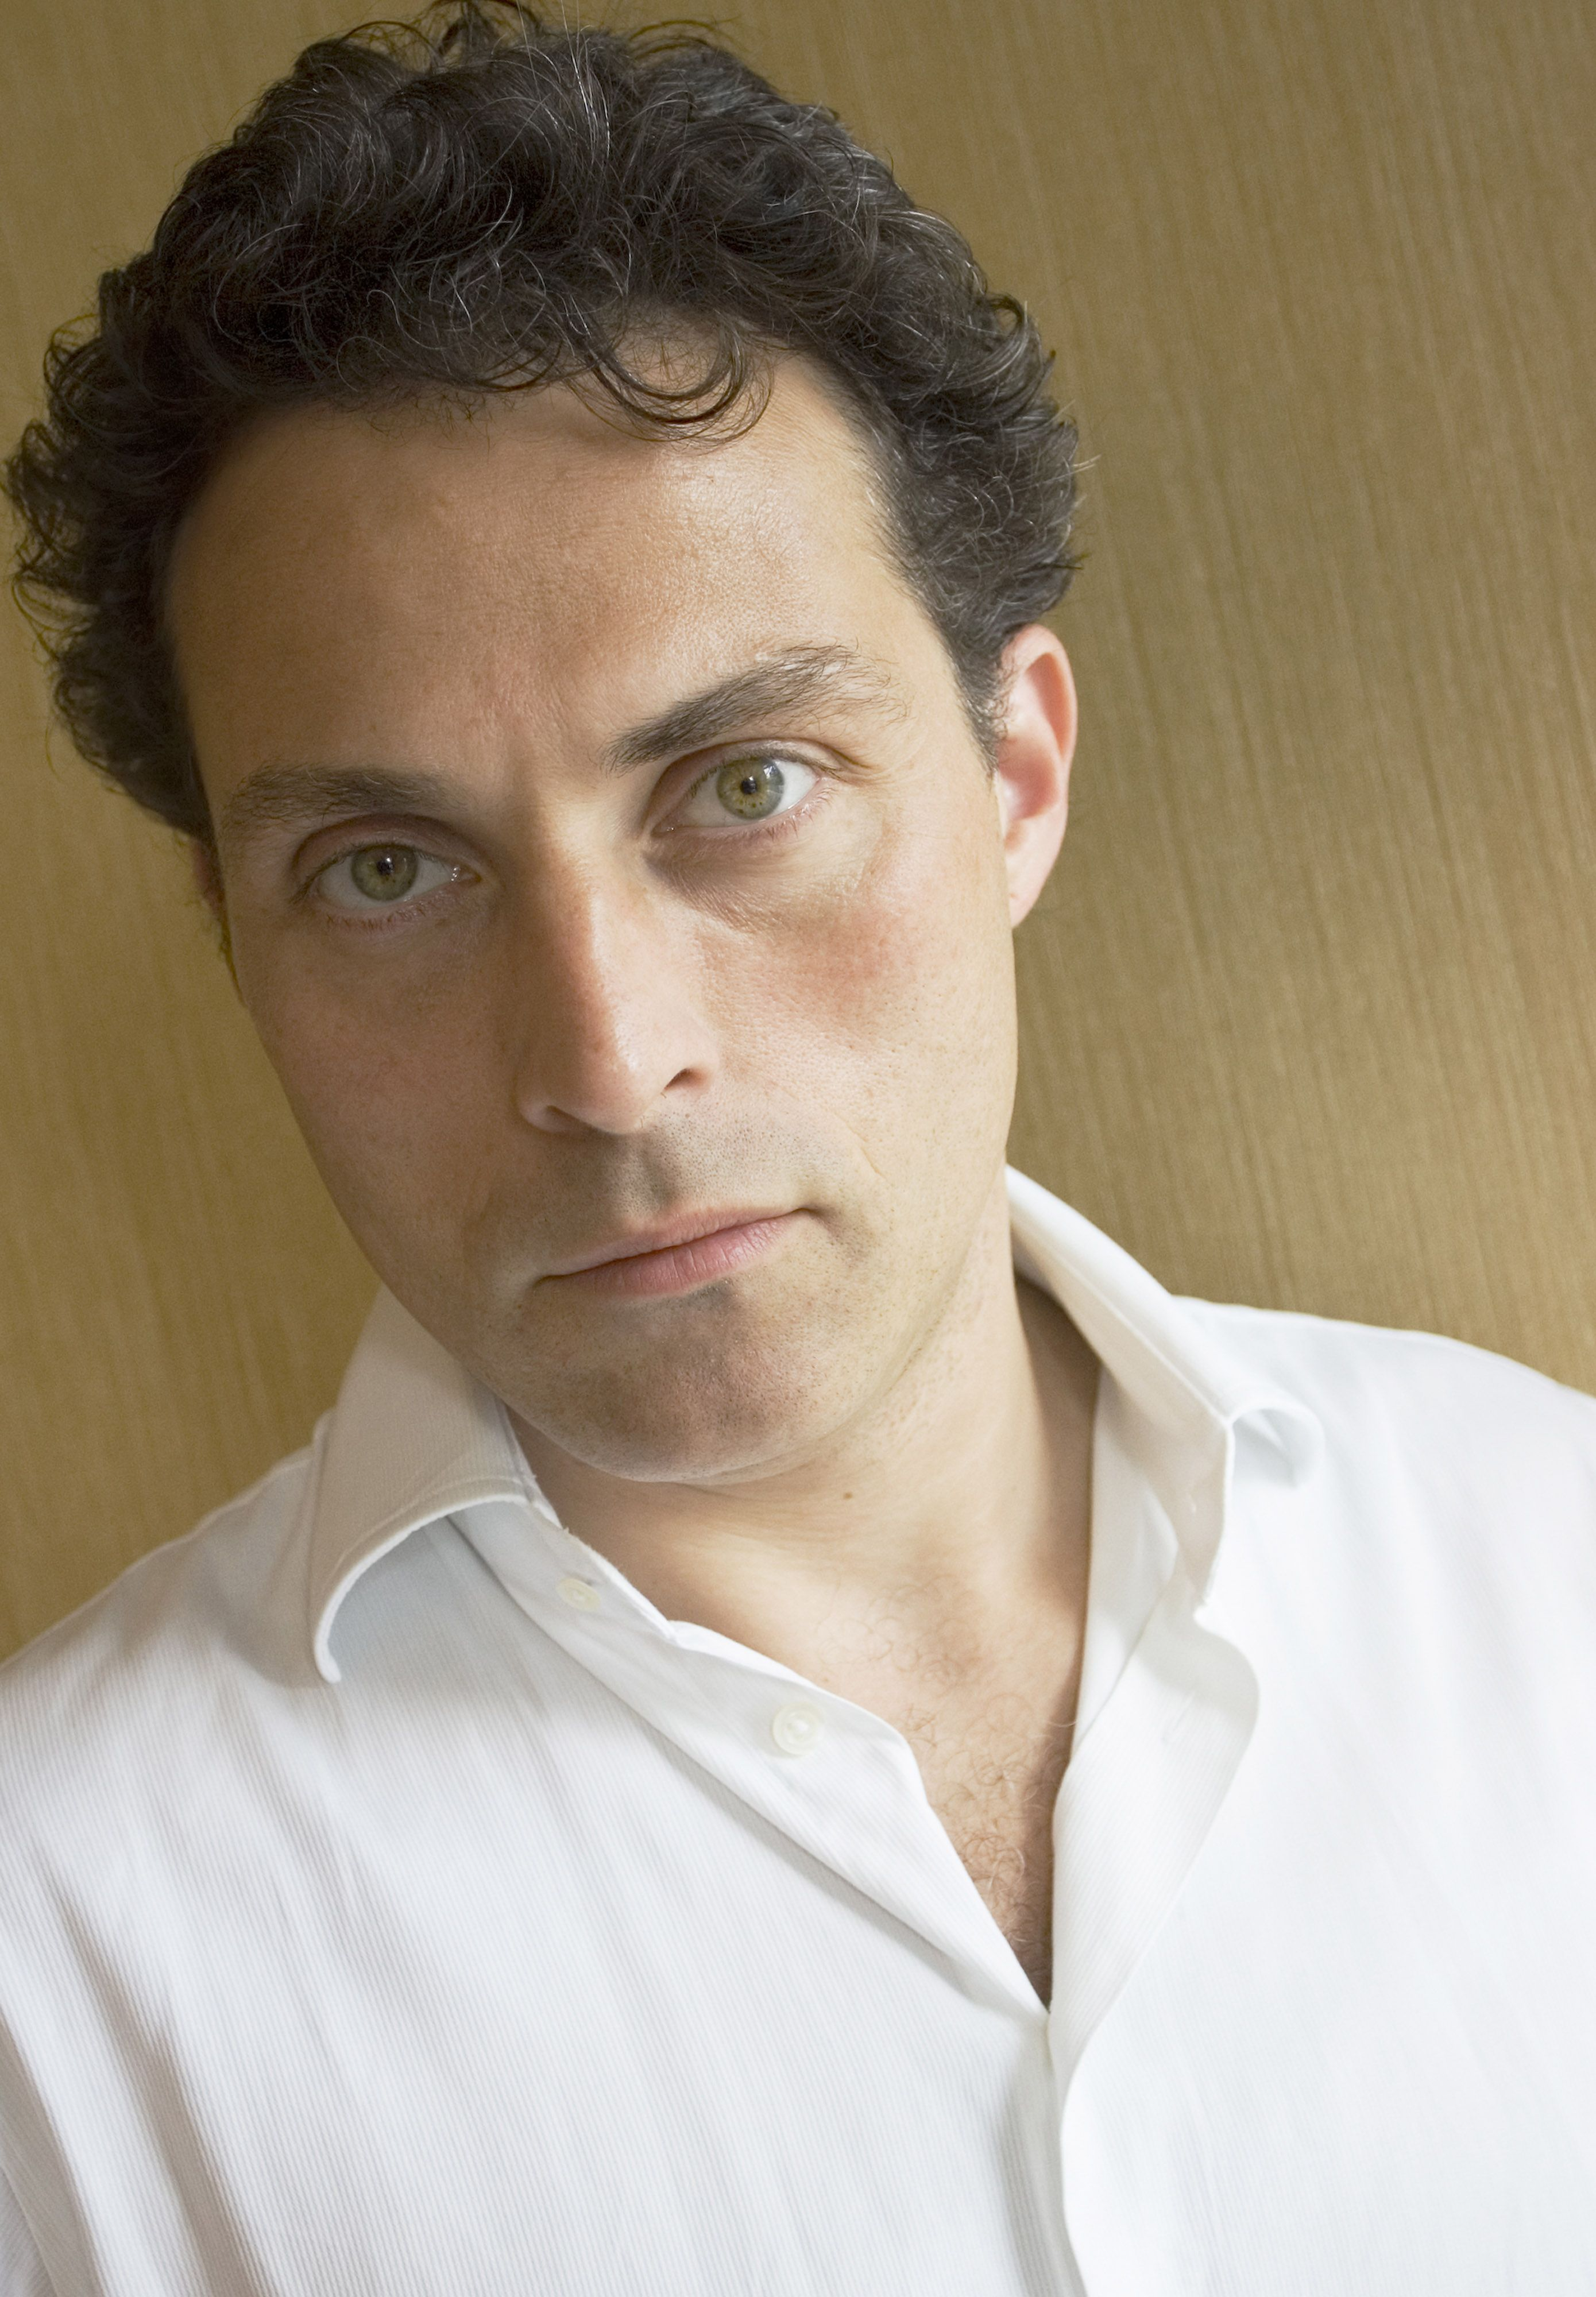 Rufus Frederick Sewell